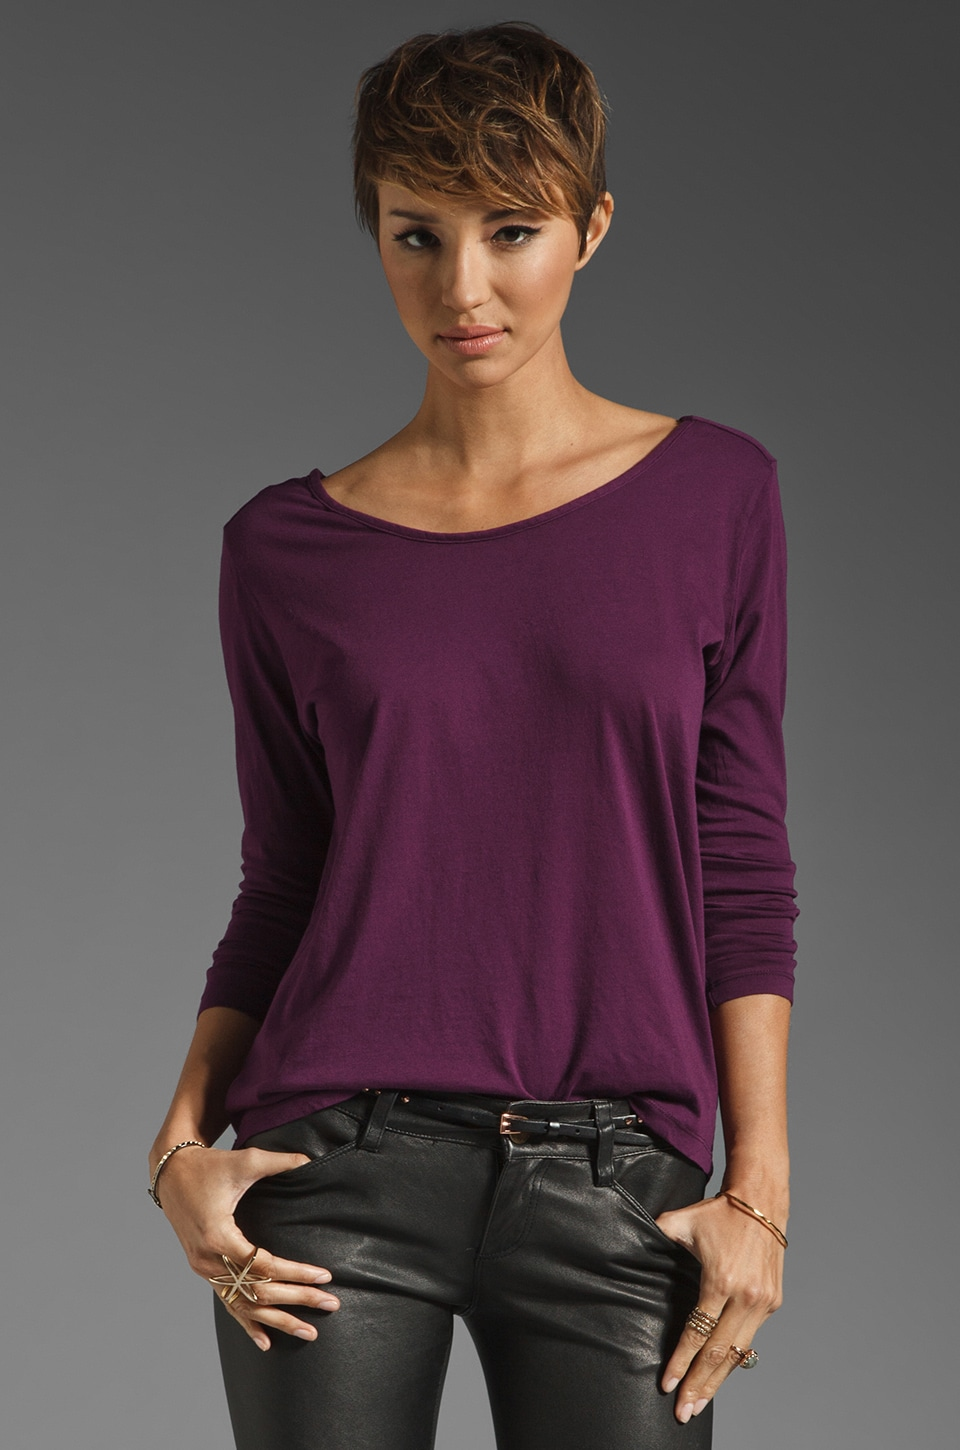 Bobi Light Weight Jersey Cut Out Top in Jam